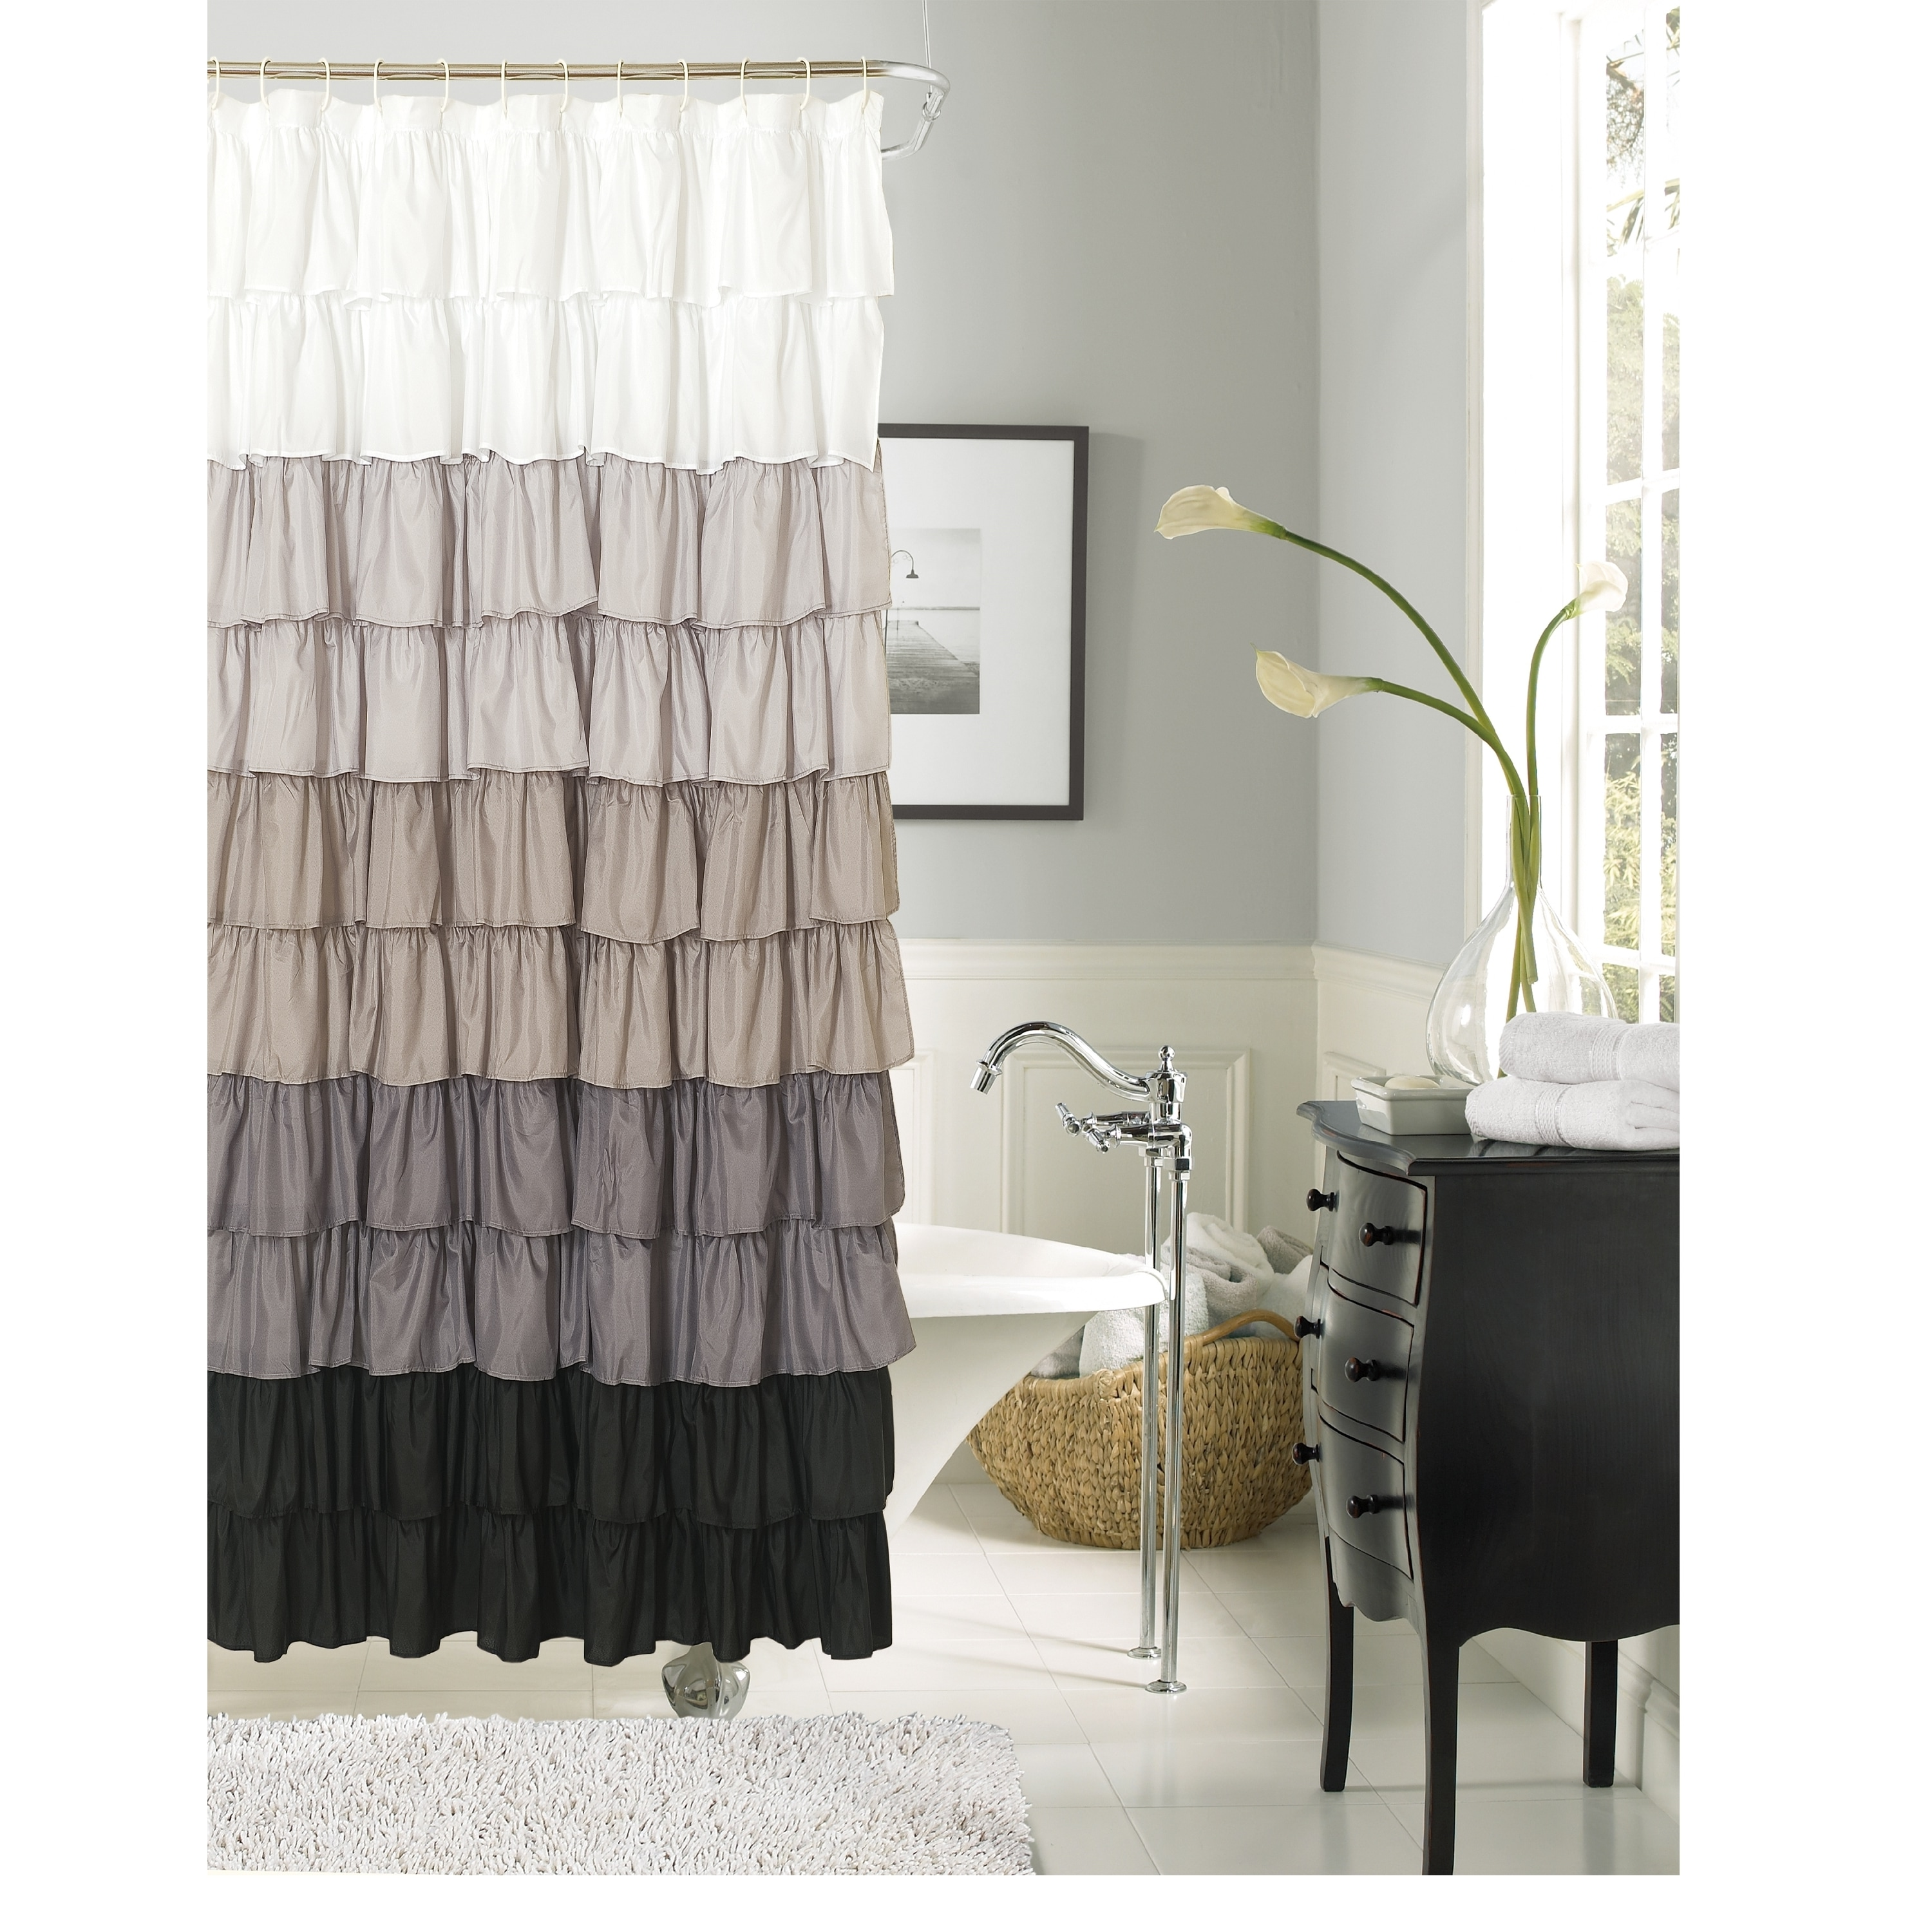 Flamenco Ruffle Shower Curtain   Free Shipping On Orders Over $45    Overstock   16950953